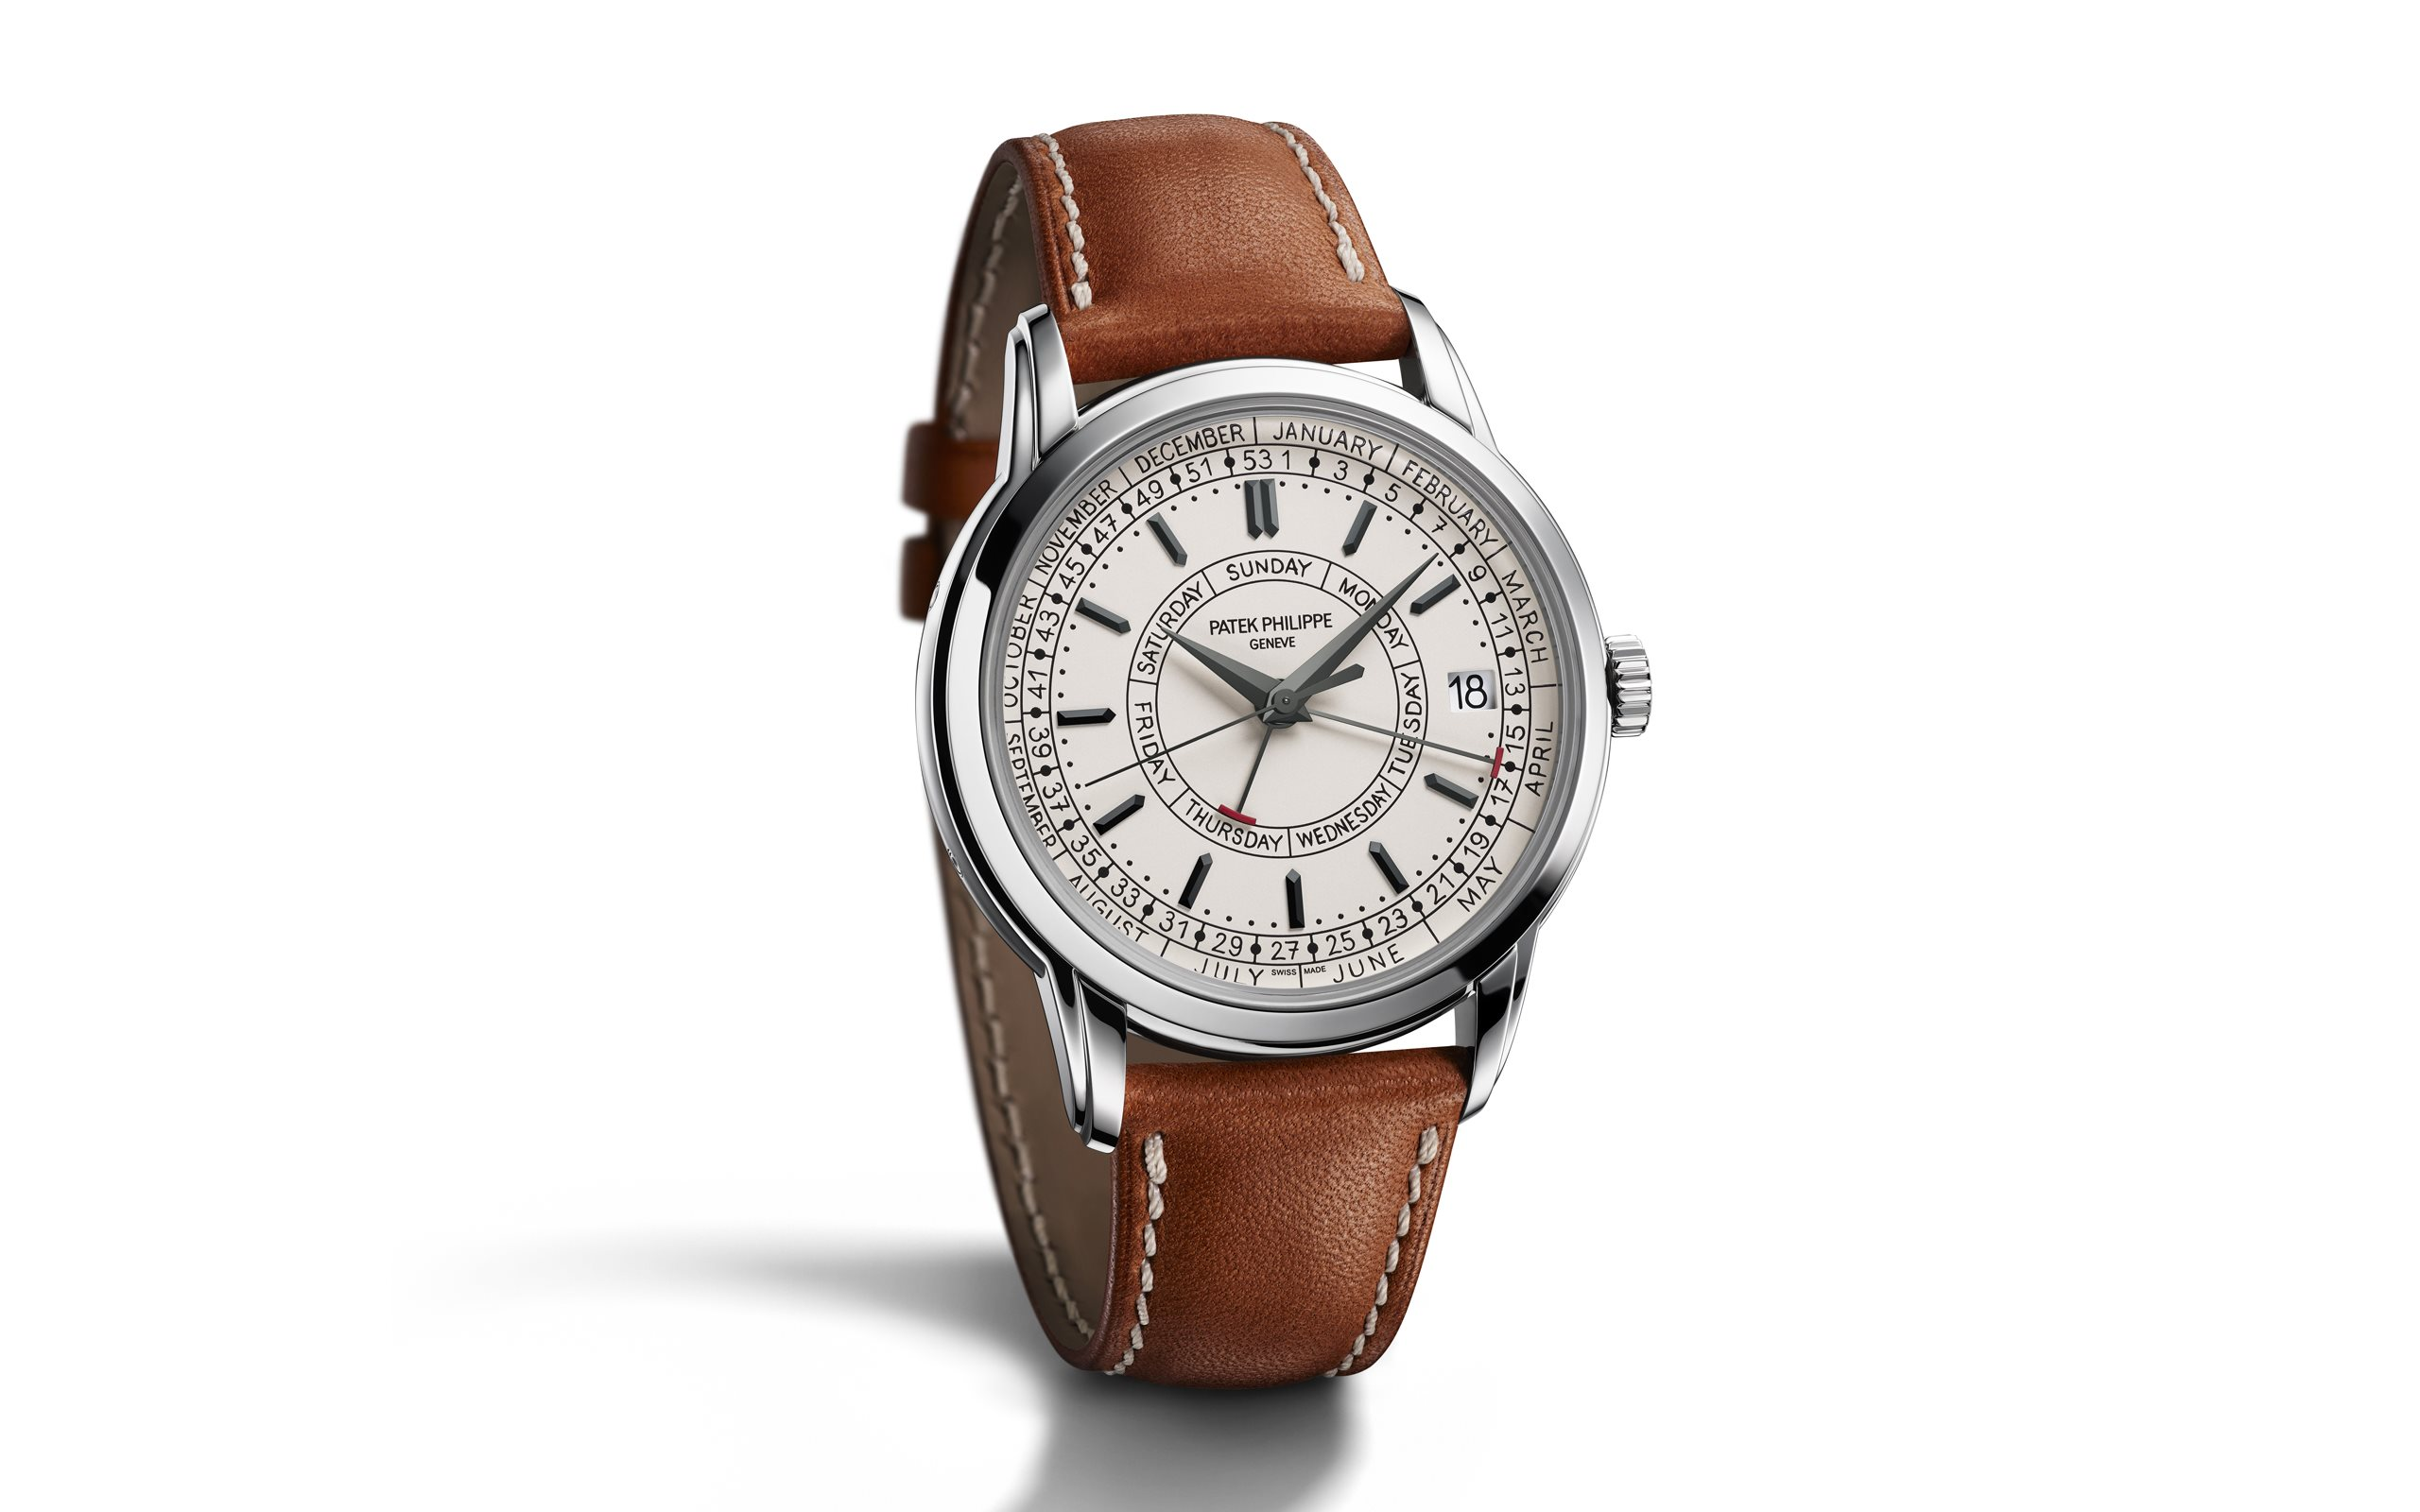 Baselworld underrated watches 2019